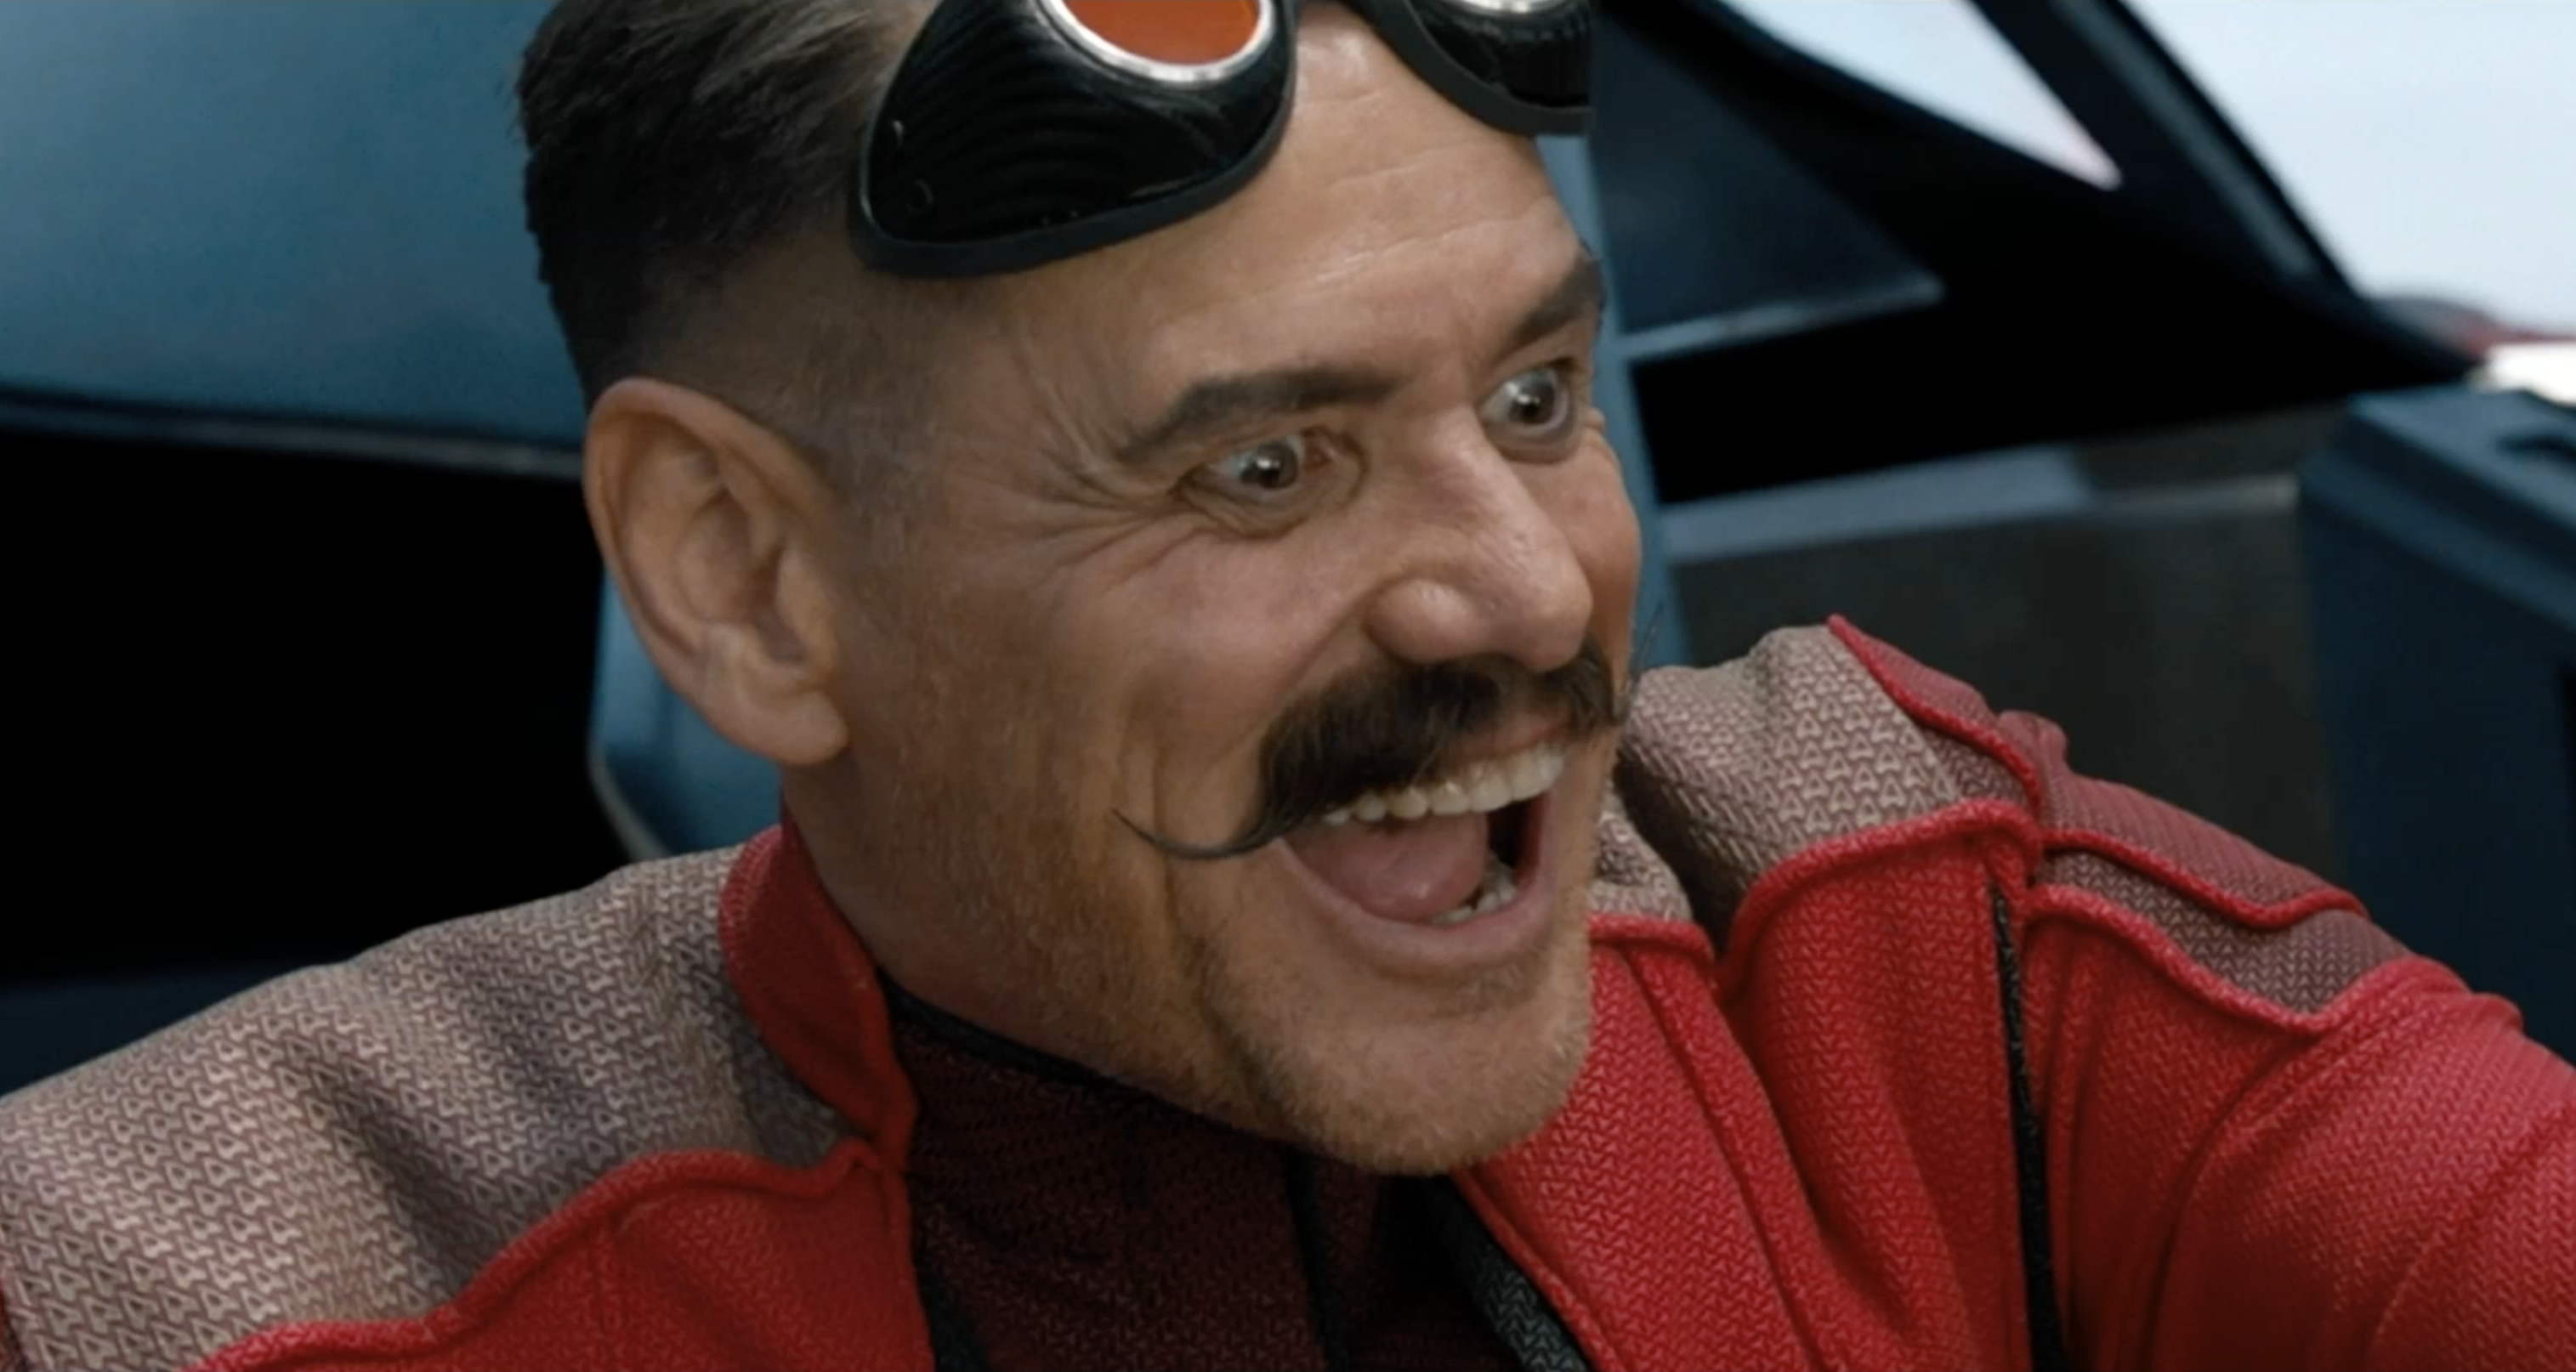 Jim Carrey as Dr. Robotnik, giddy in an aircraft with a mischievous, shit-eating grin